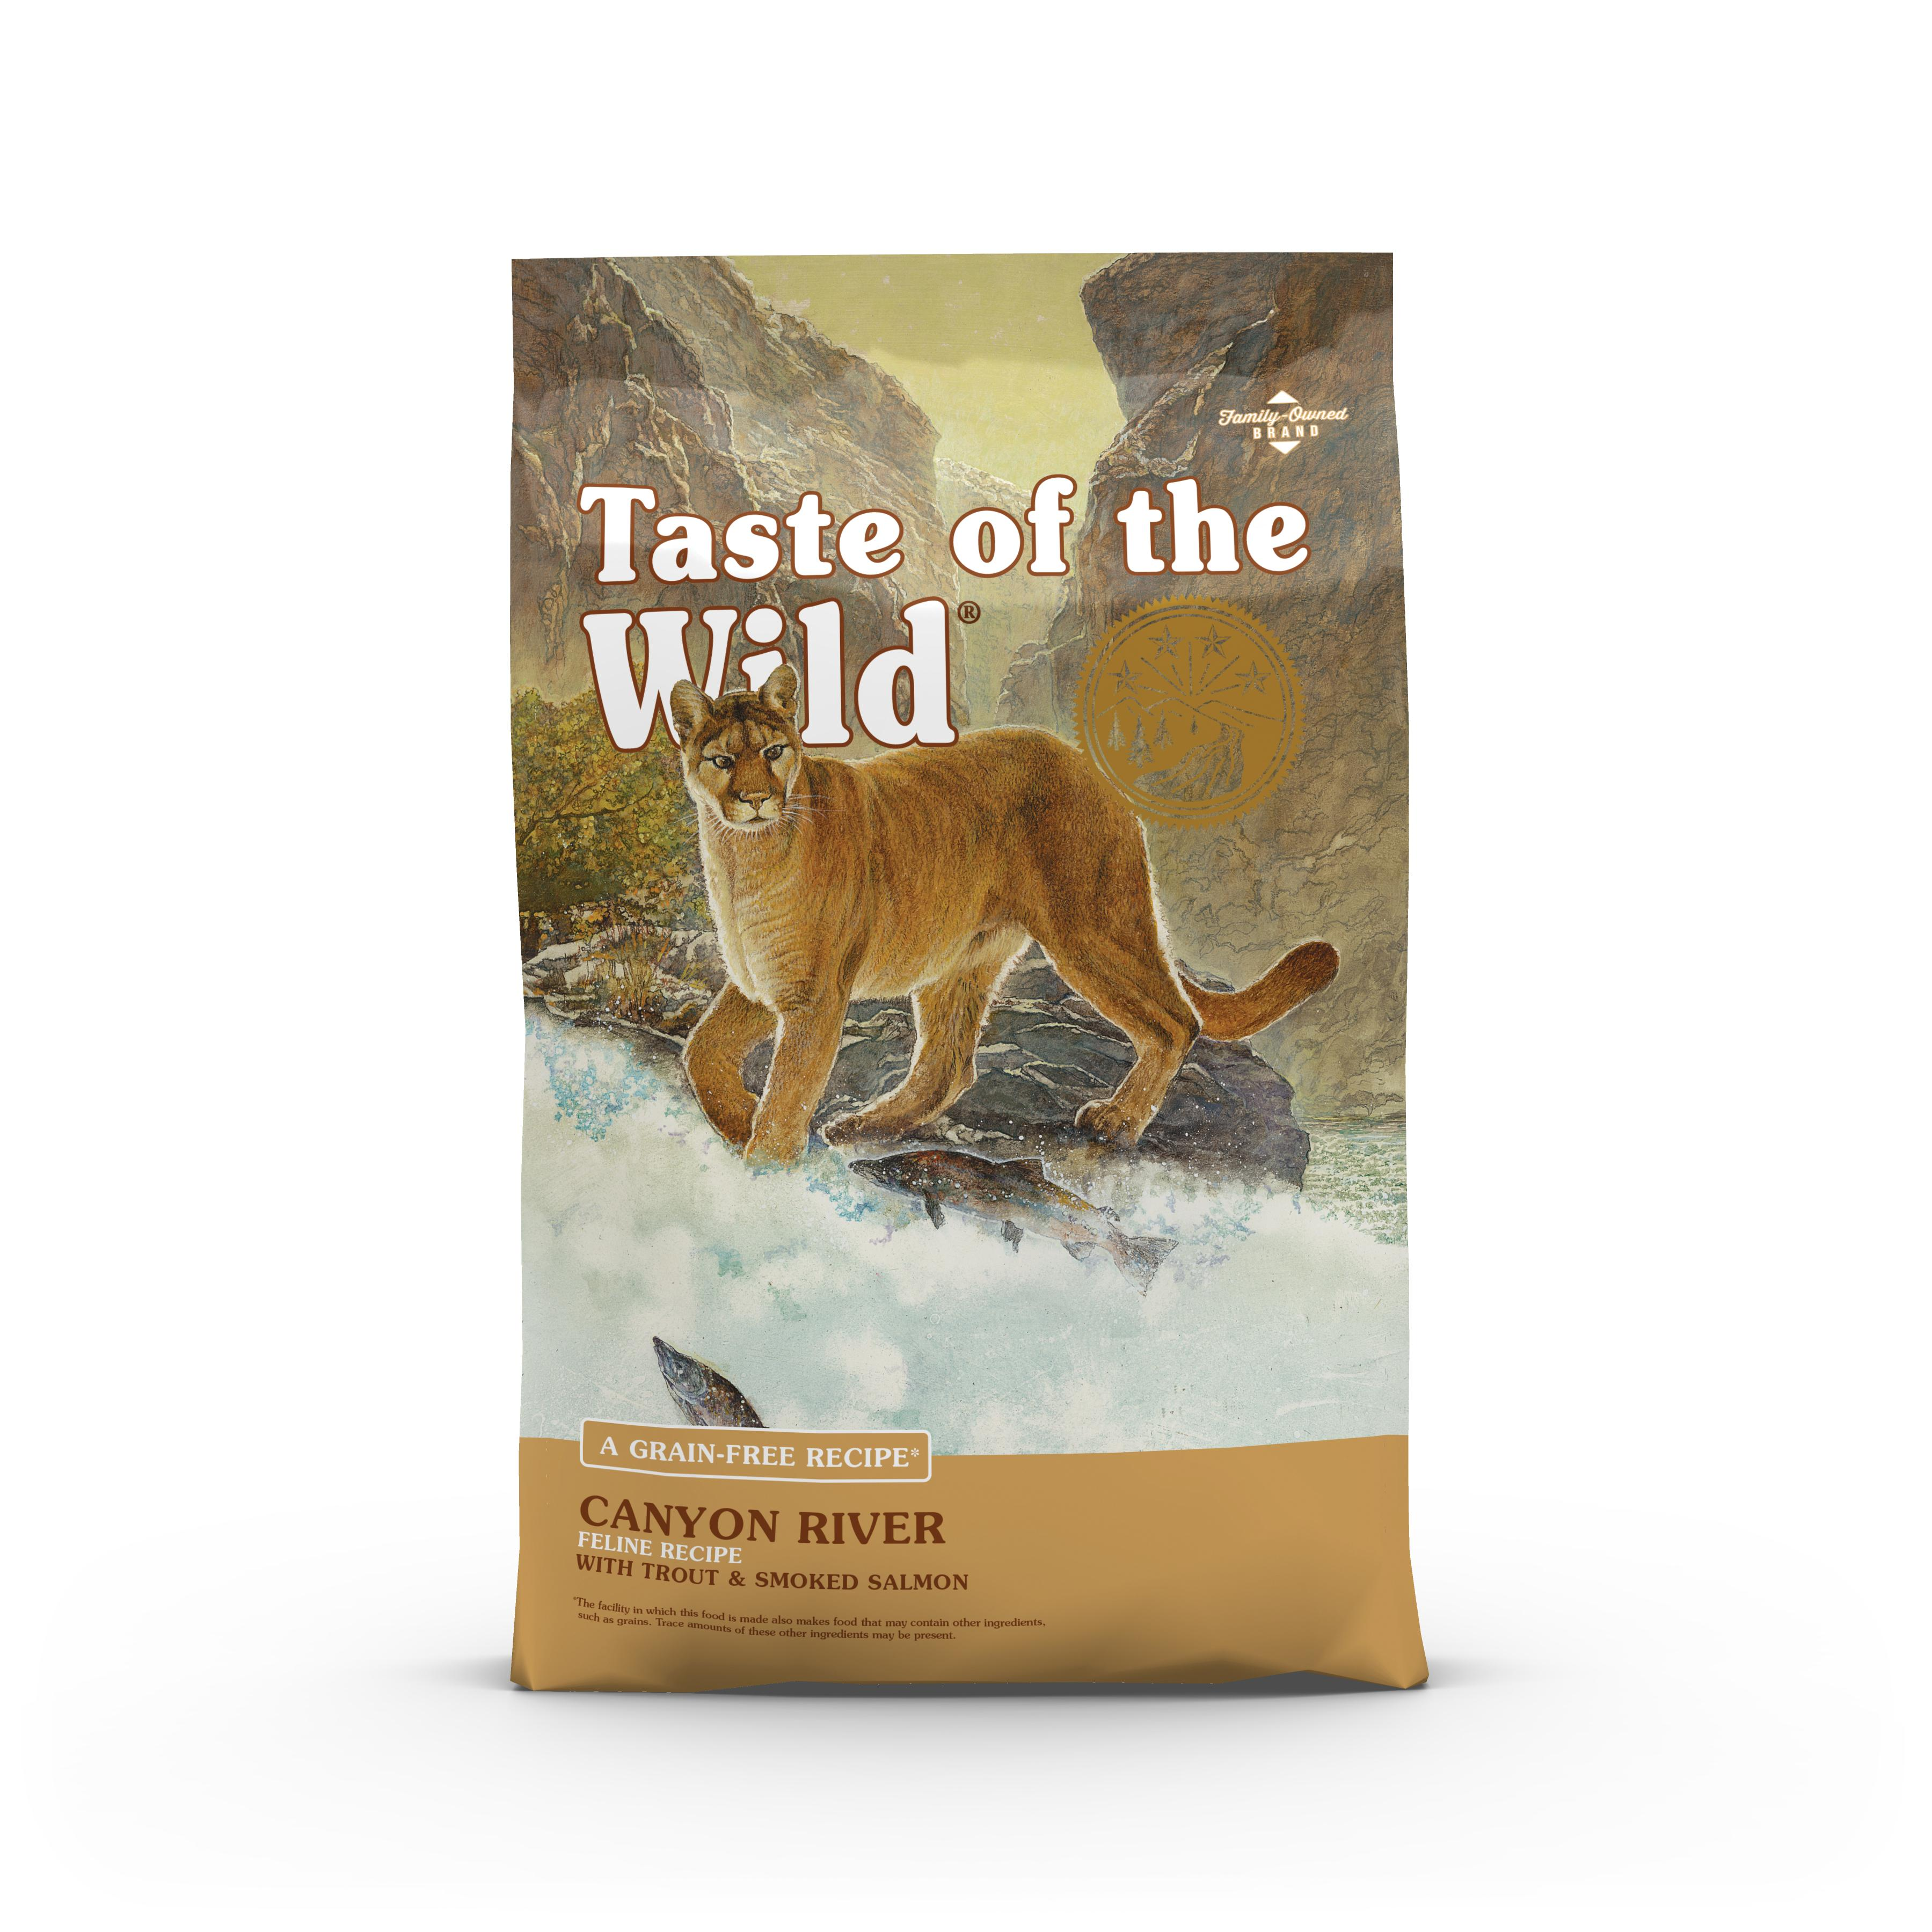 Taste of the Wild Canyon River with Trout & Smoked Salmon Grain-Free Dry Cat Food Image